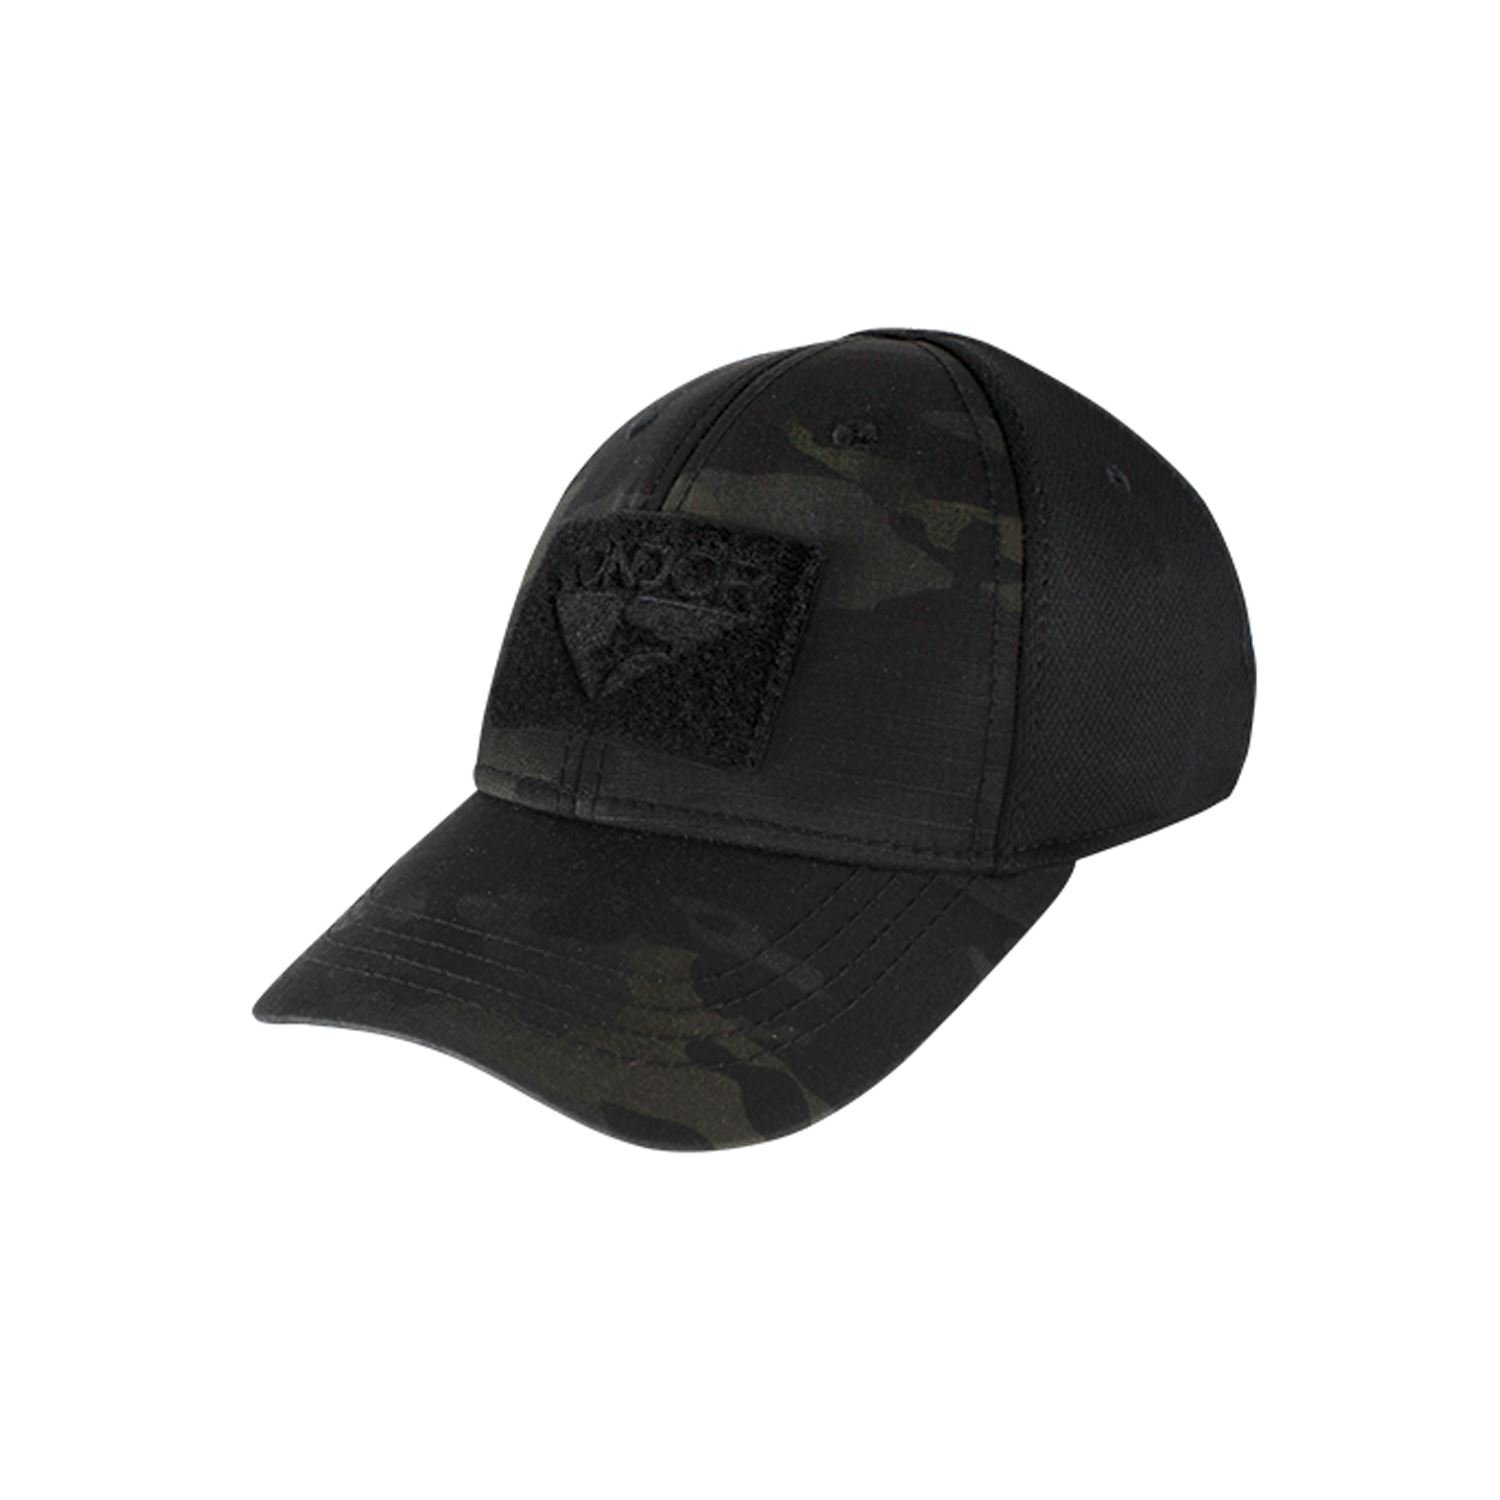 Condor Flex Cap, Black Multicam - Large / XL 161080-021-L